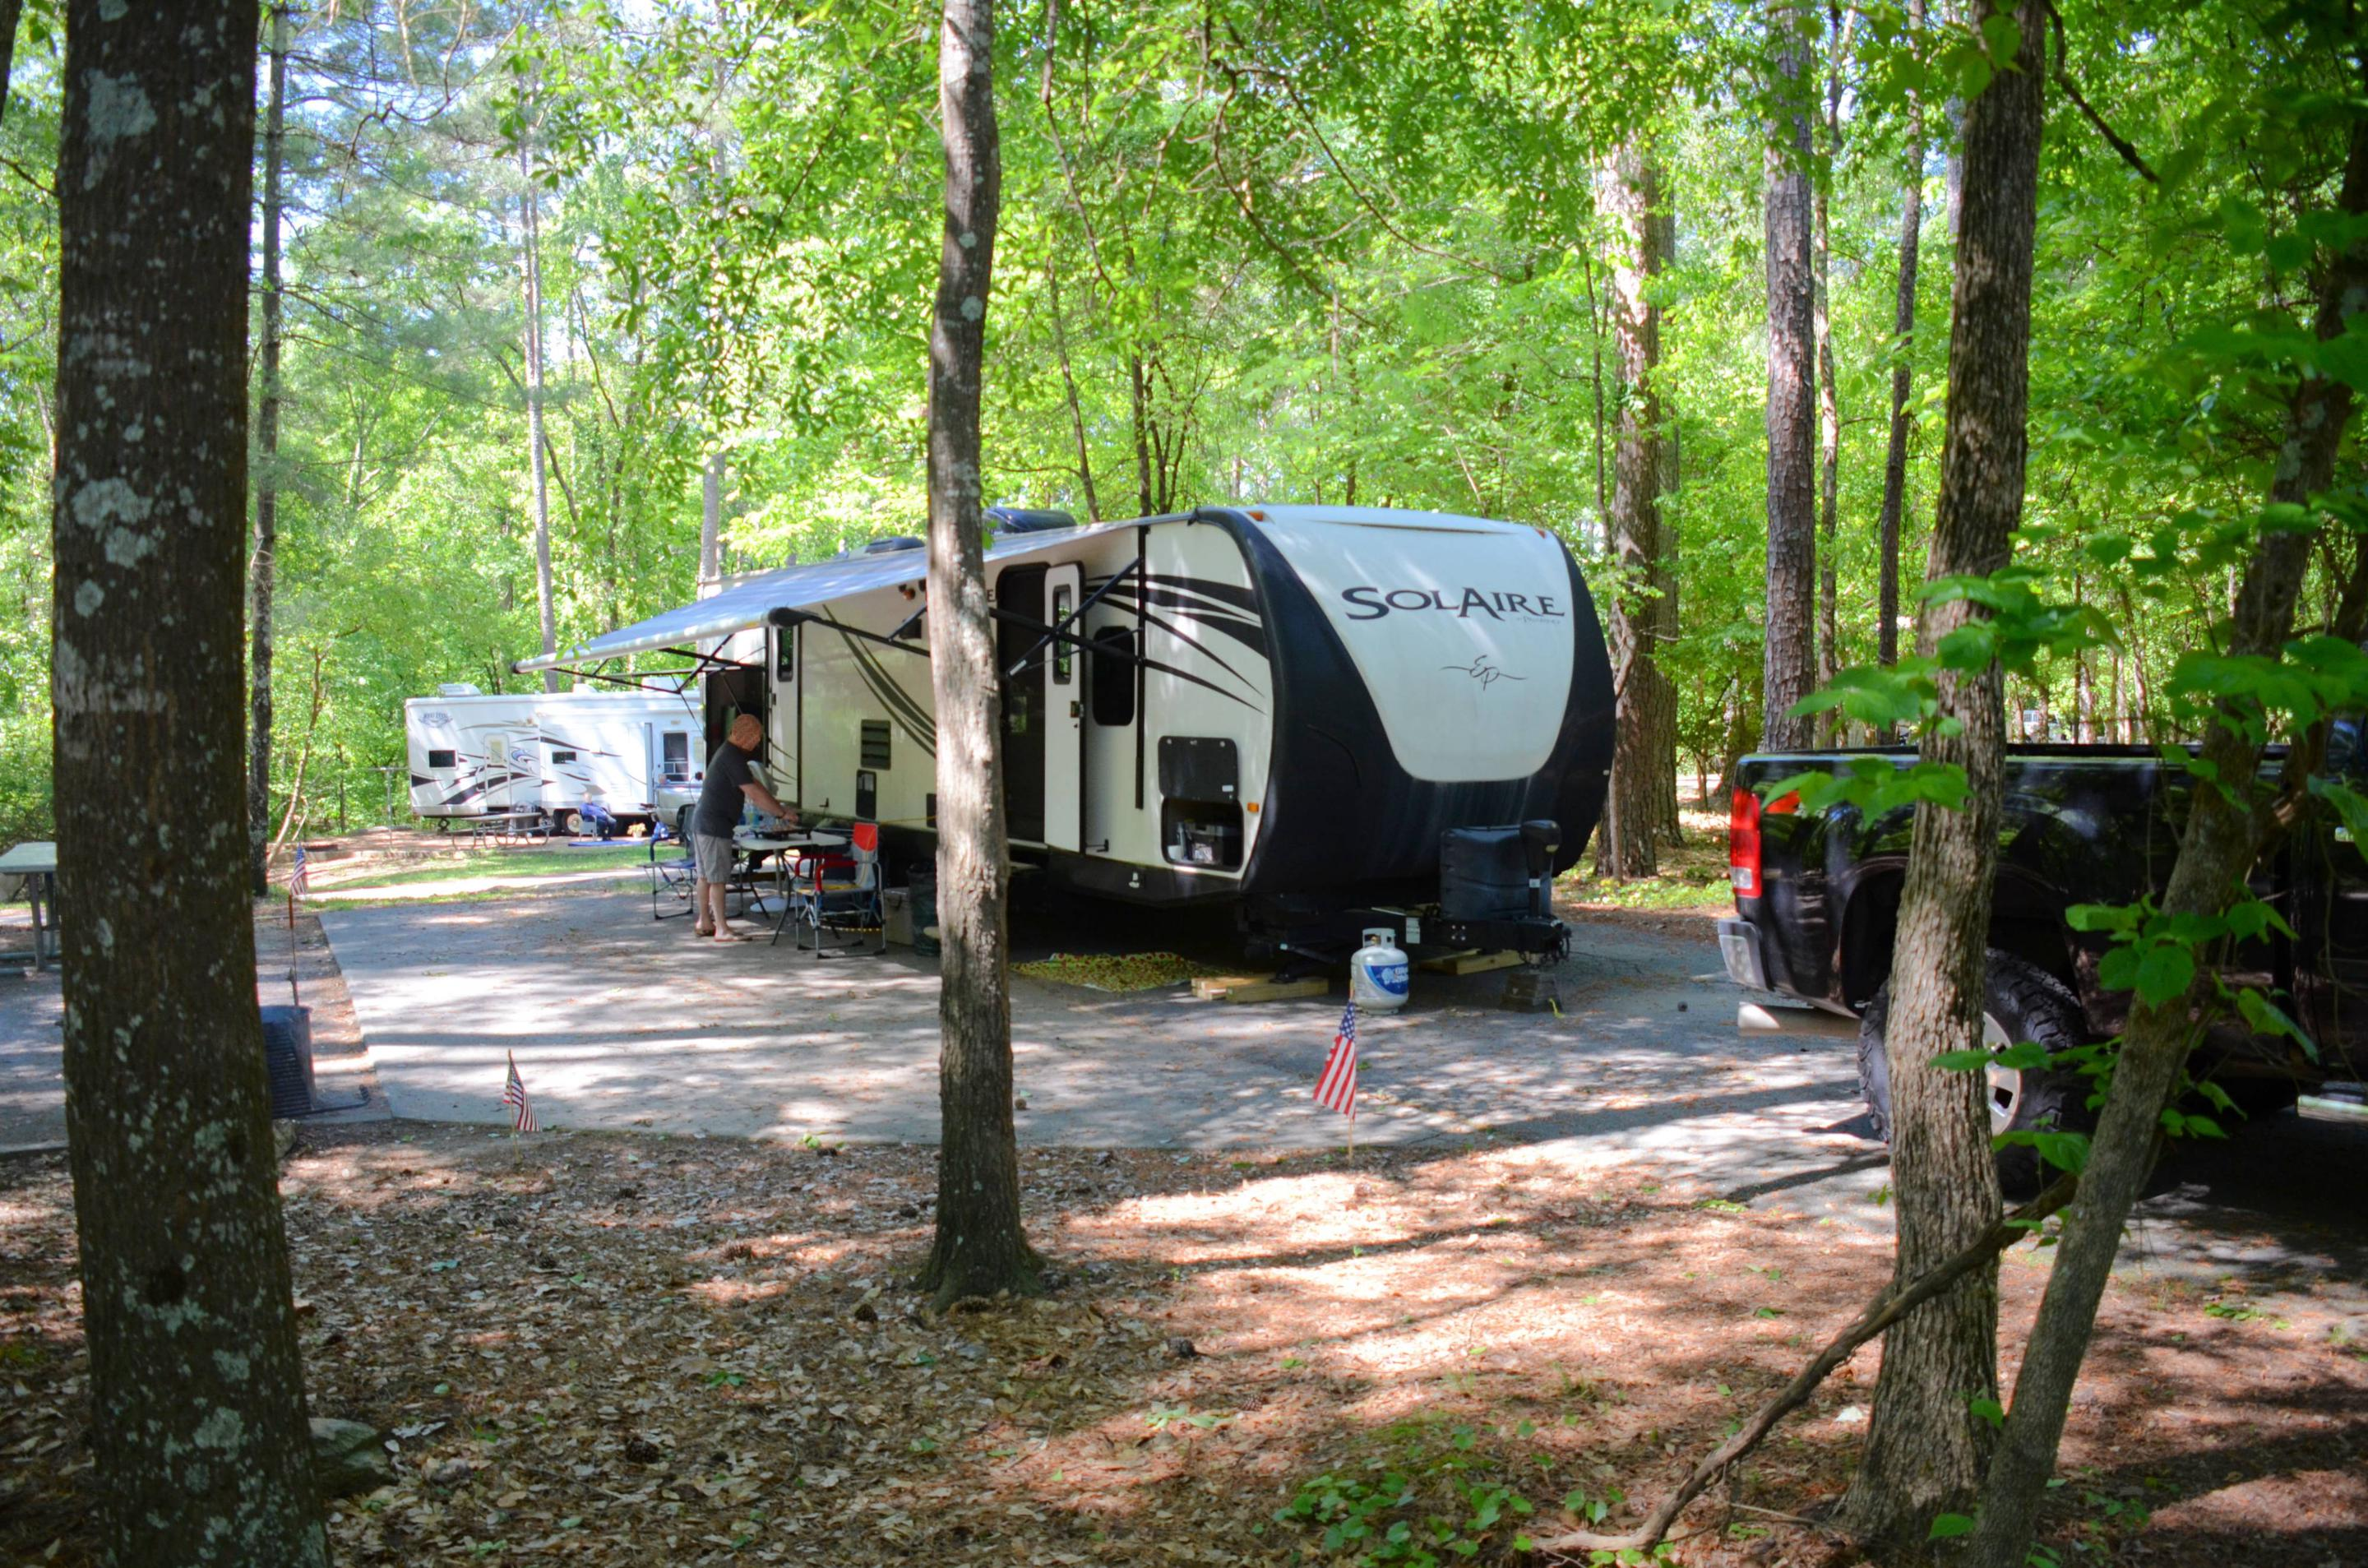 Campsite view, awning-side clearanceMcKinney Campground, campsite 73.